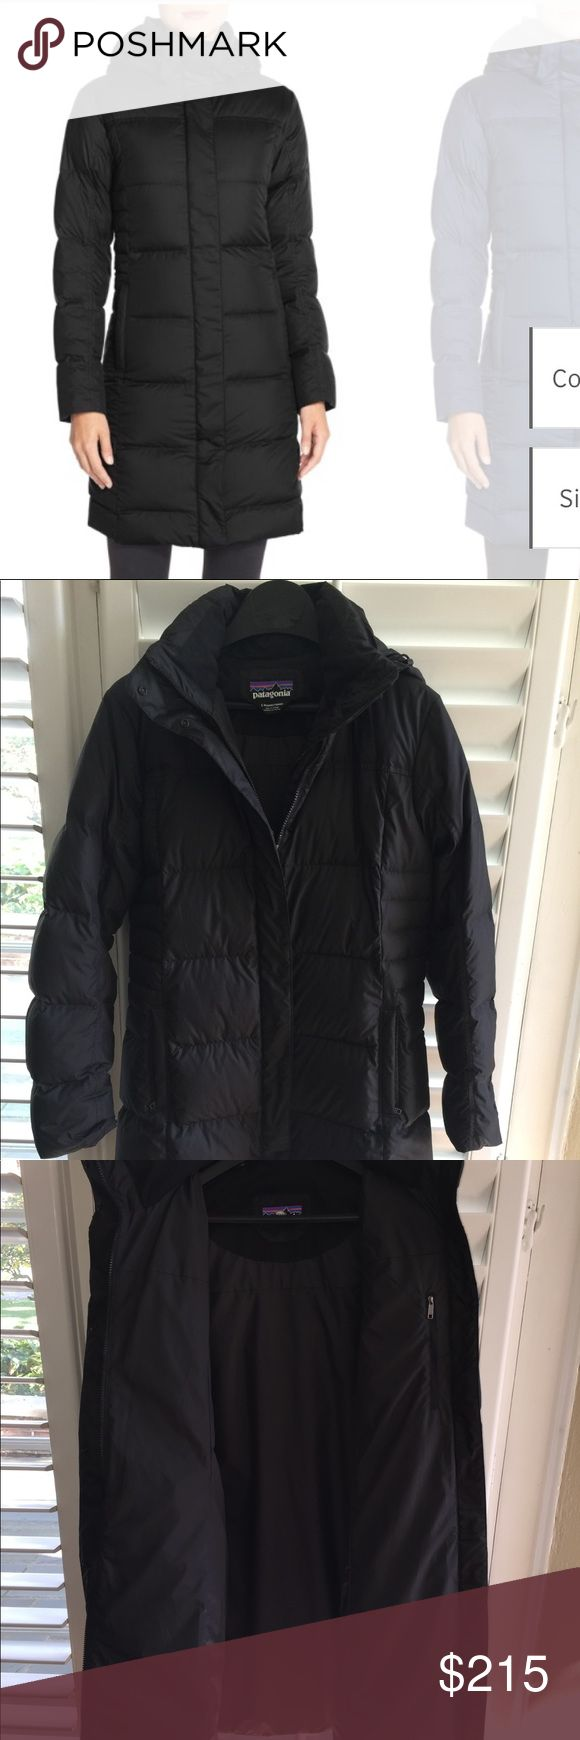 Down With It water repellent Patagonia parka No signs of wear! This is a brand new jacket that barely went through one winter season. Black Patagonia water repellent parka. Seriously the coziest warmest parka that's easy to move in and adjust to your preferences. Would love to find this in a smaller size. Patagonia Jackets & Coats Puffers